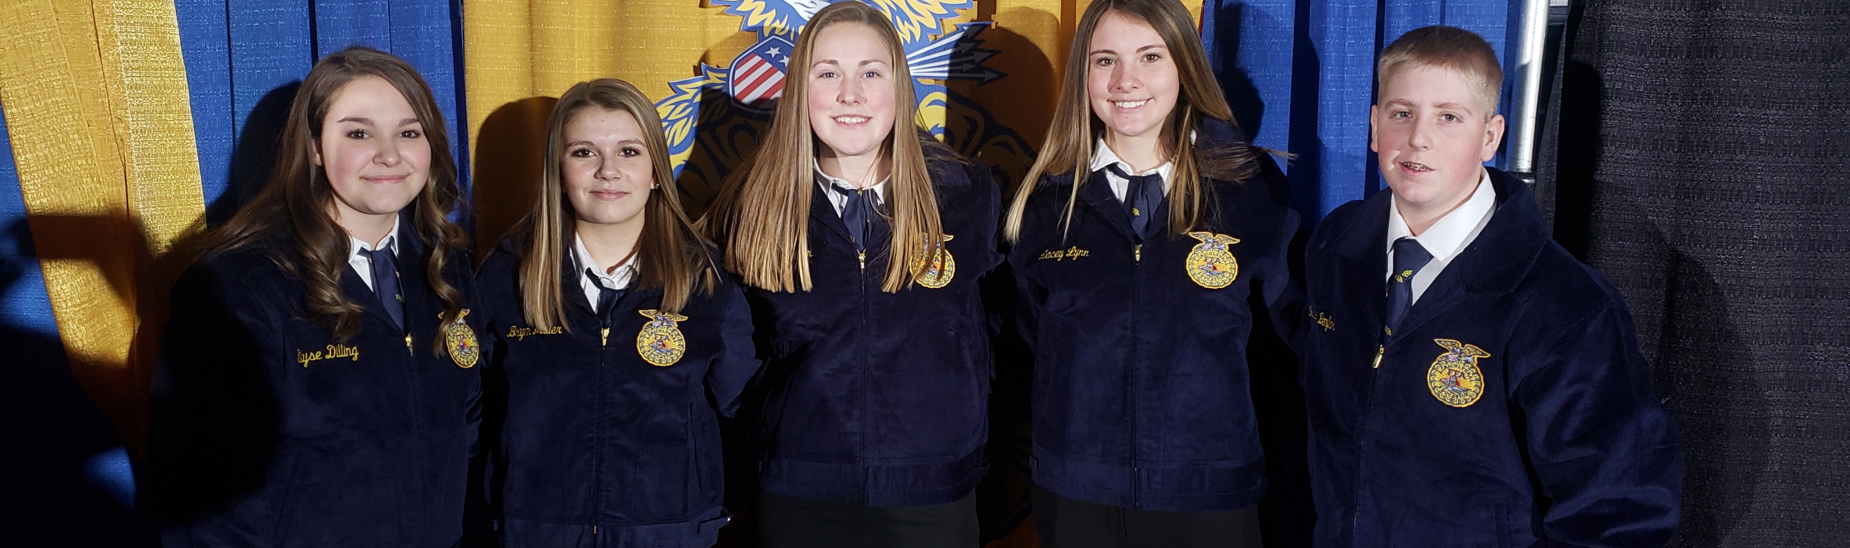 Received their FFA jackets through the PA State FFA Alumni Association program.